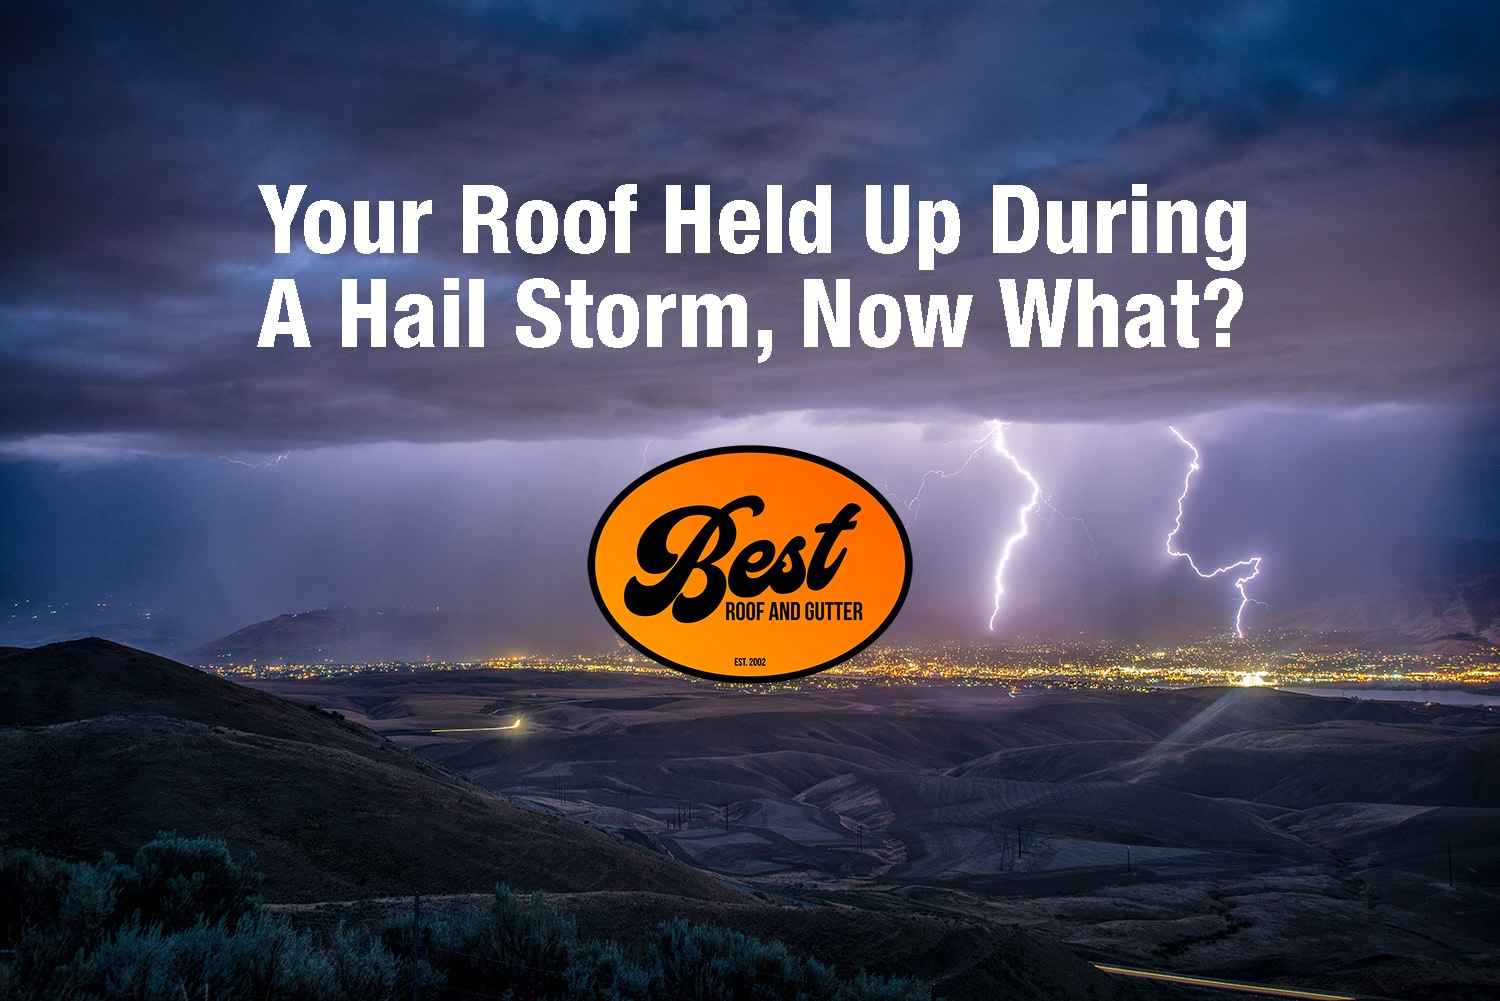 Your Roof Held Up During A Hail Storm, Now What?